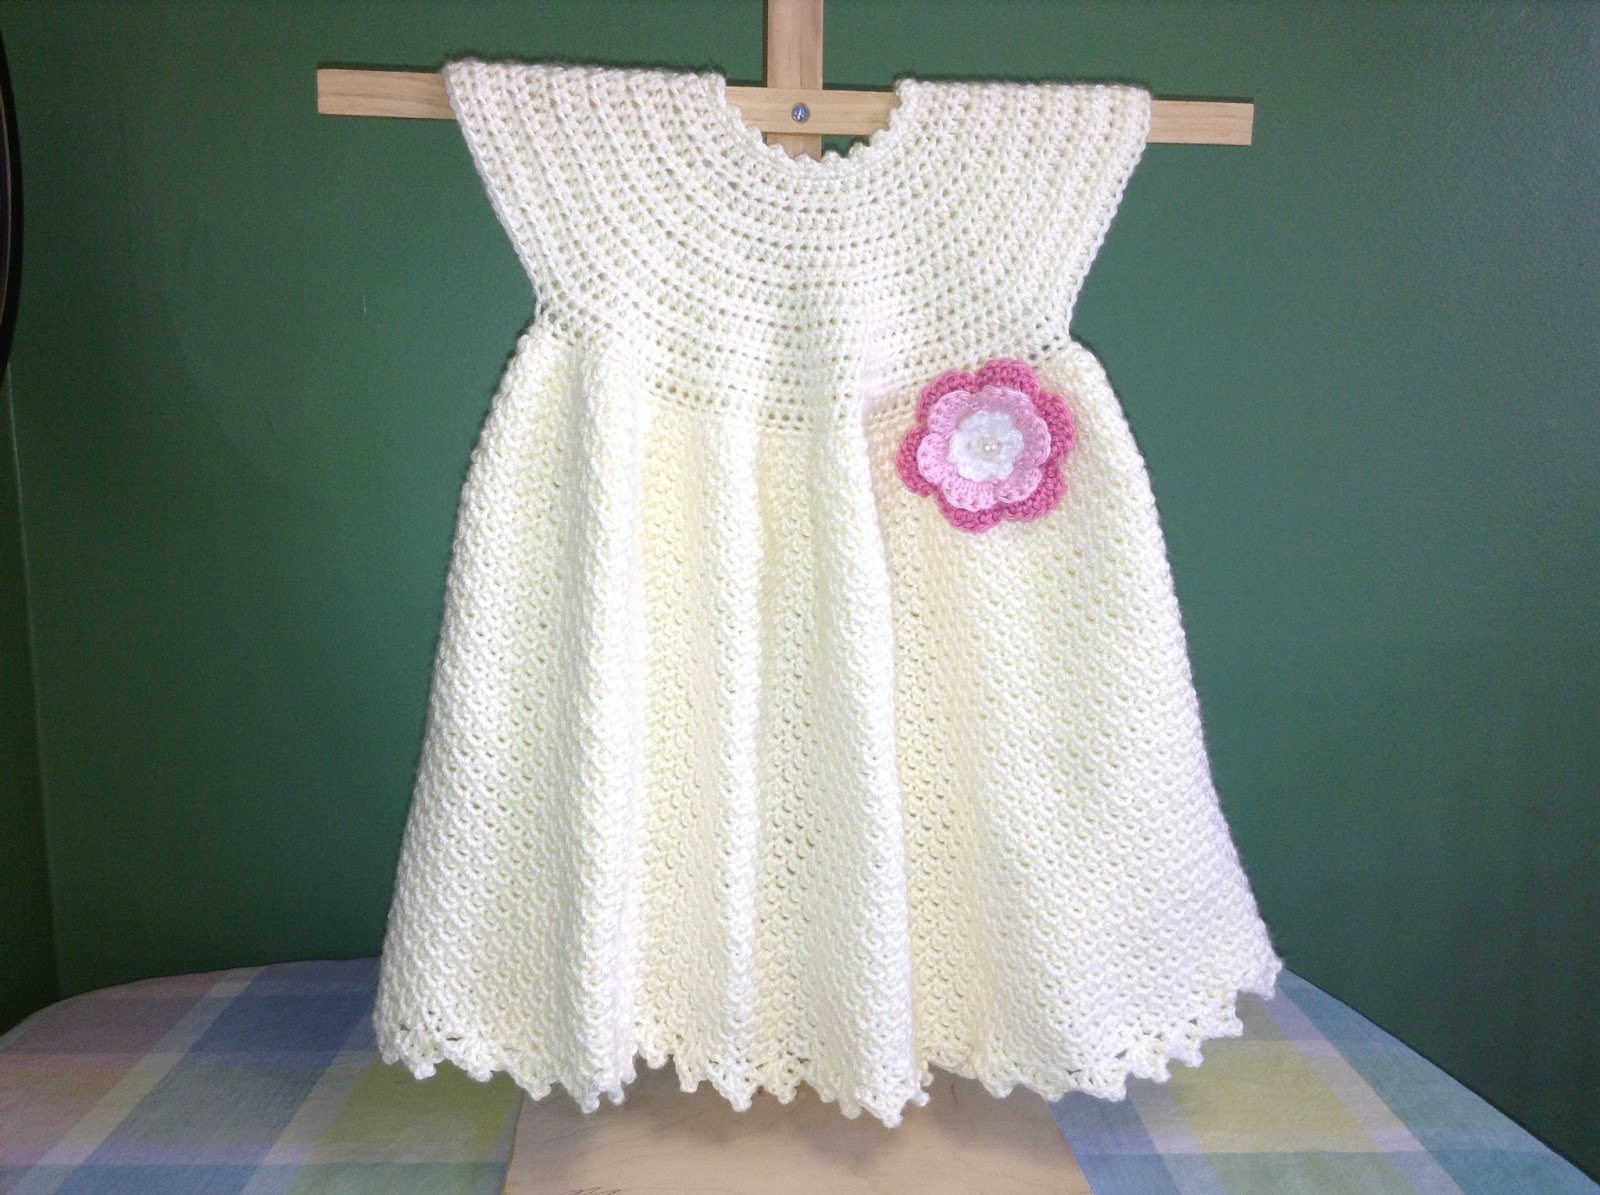 Pretty baby dress with crocheted rosette